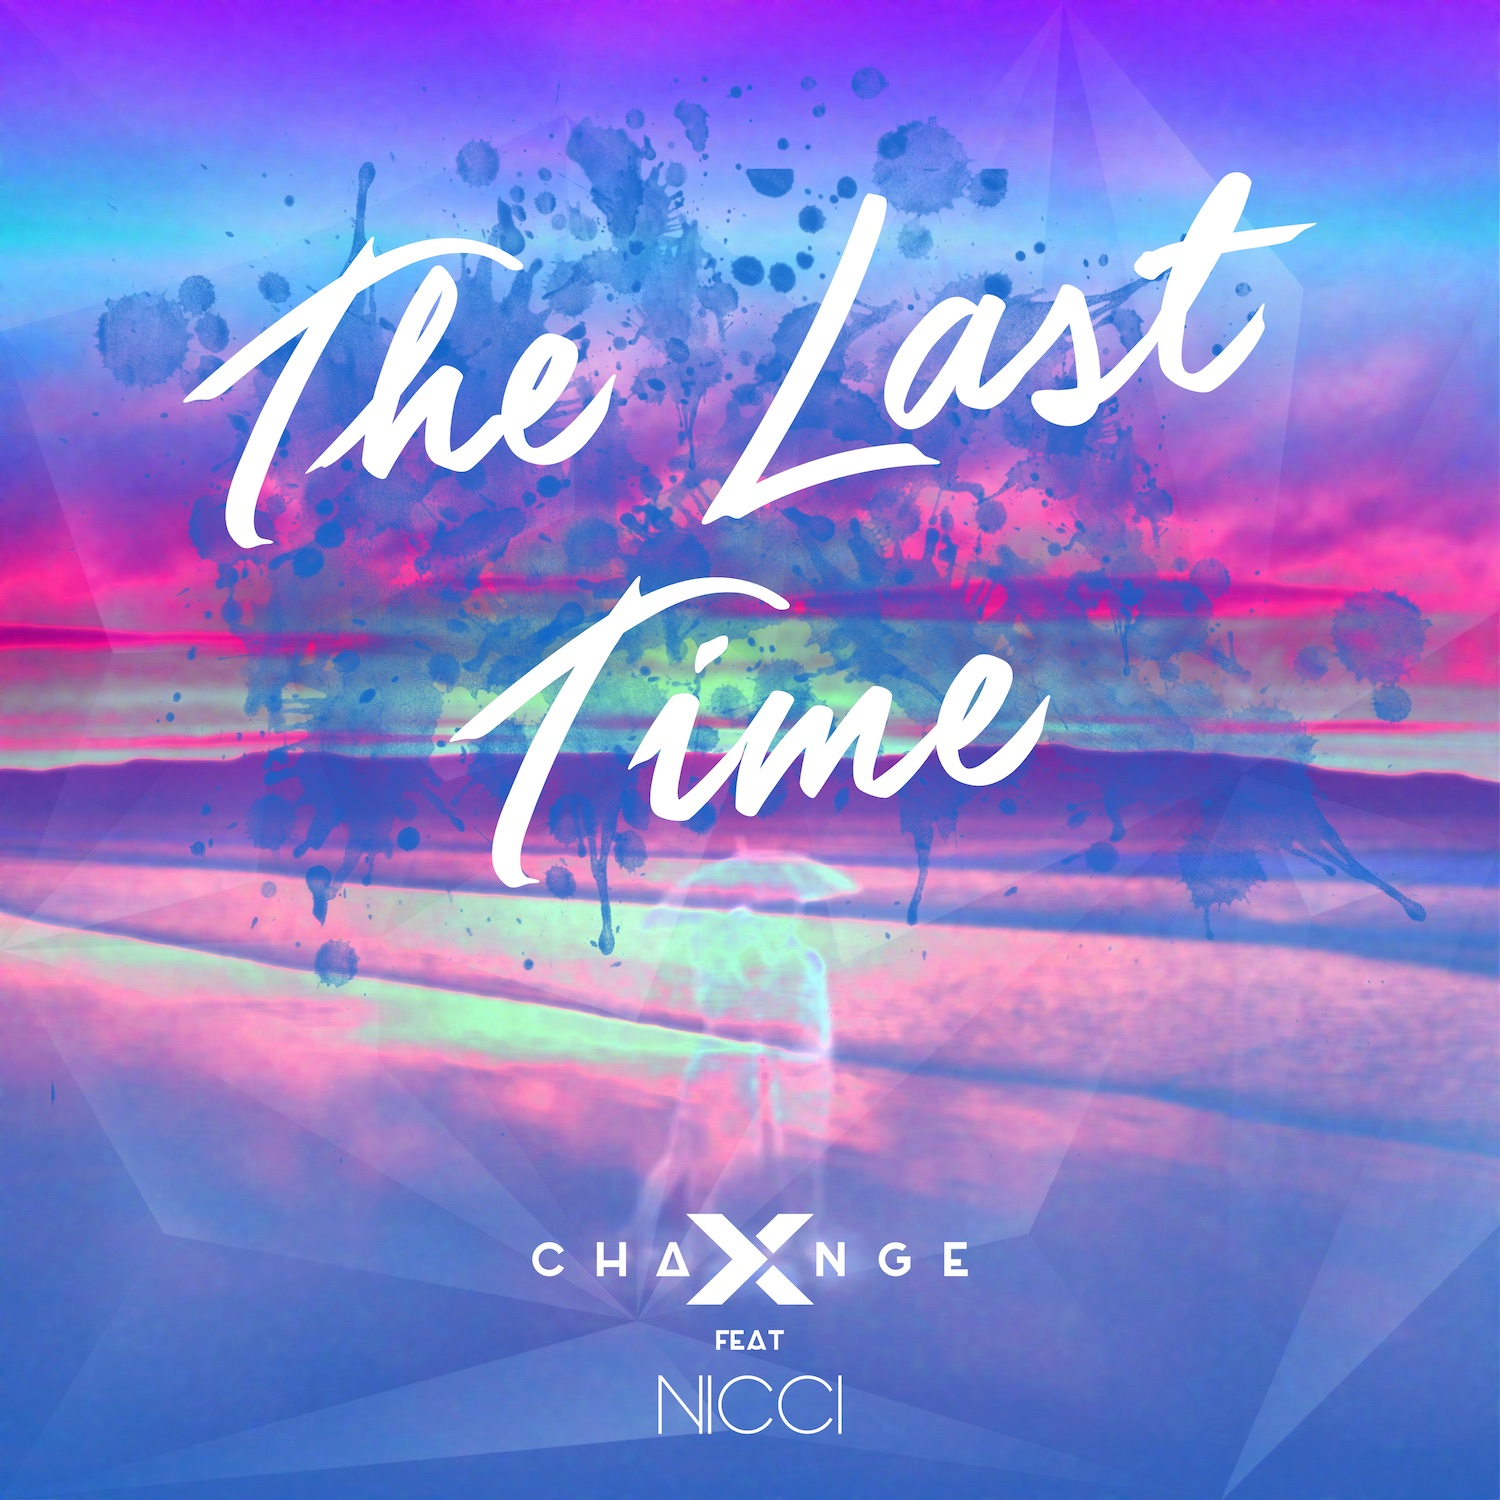 X-Change ft Nicci - The Last Time Artwork FINAL web